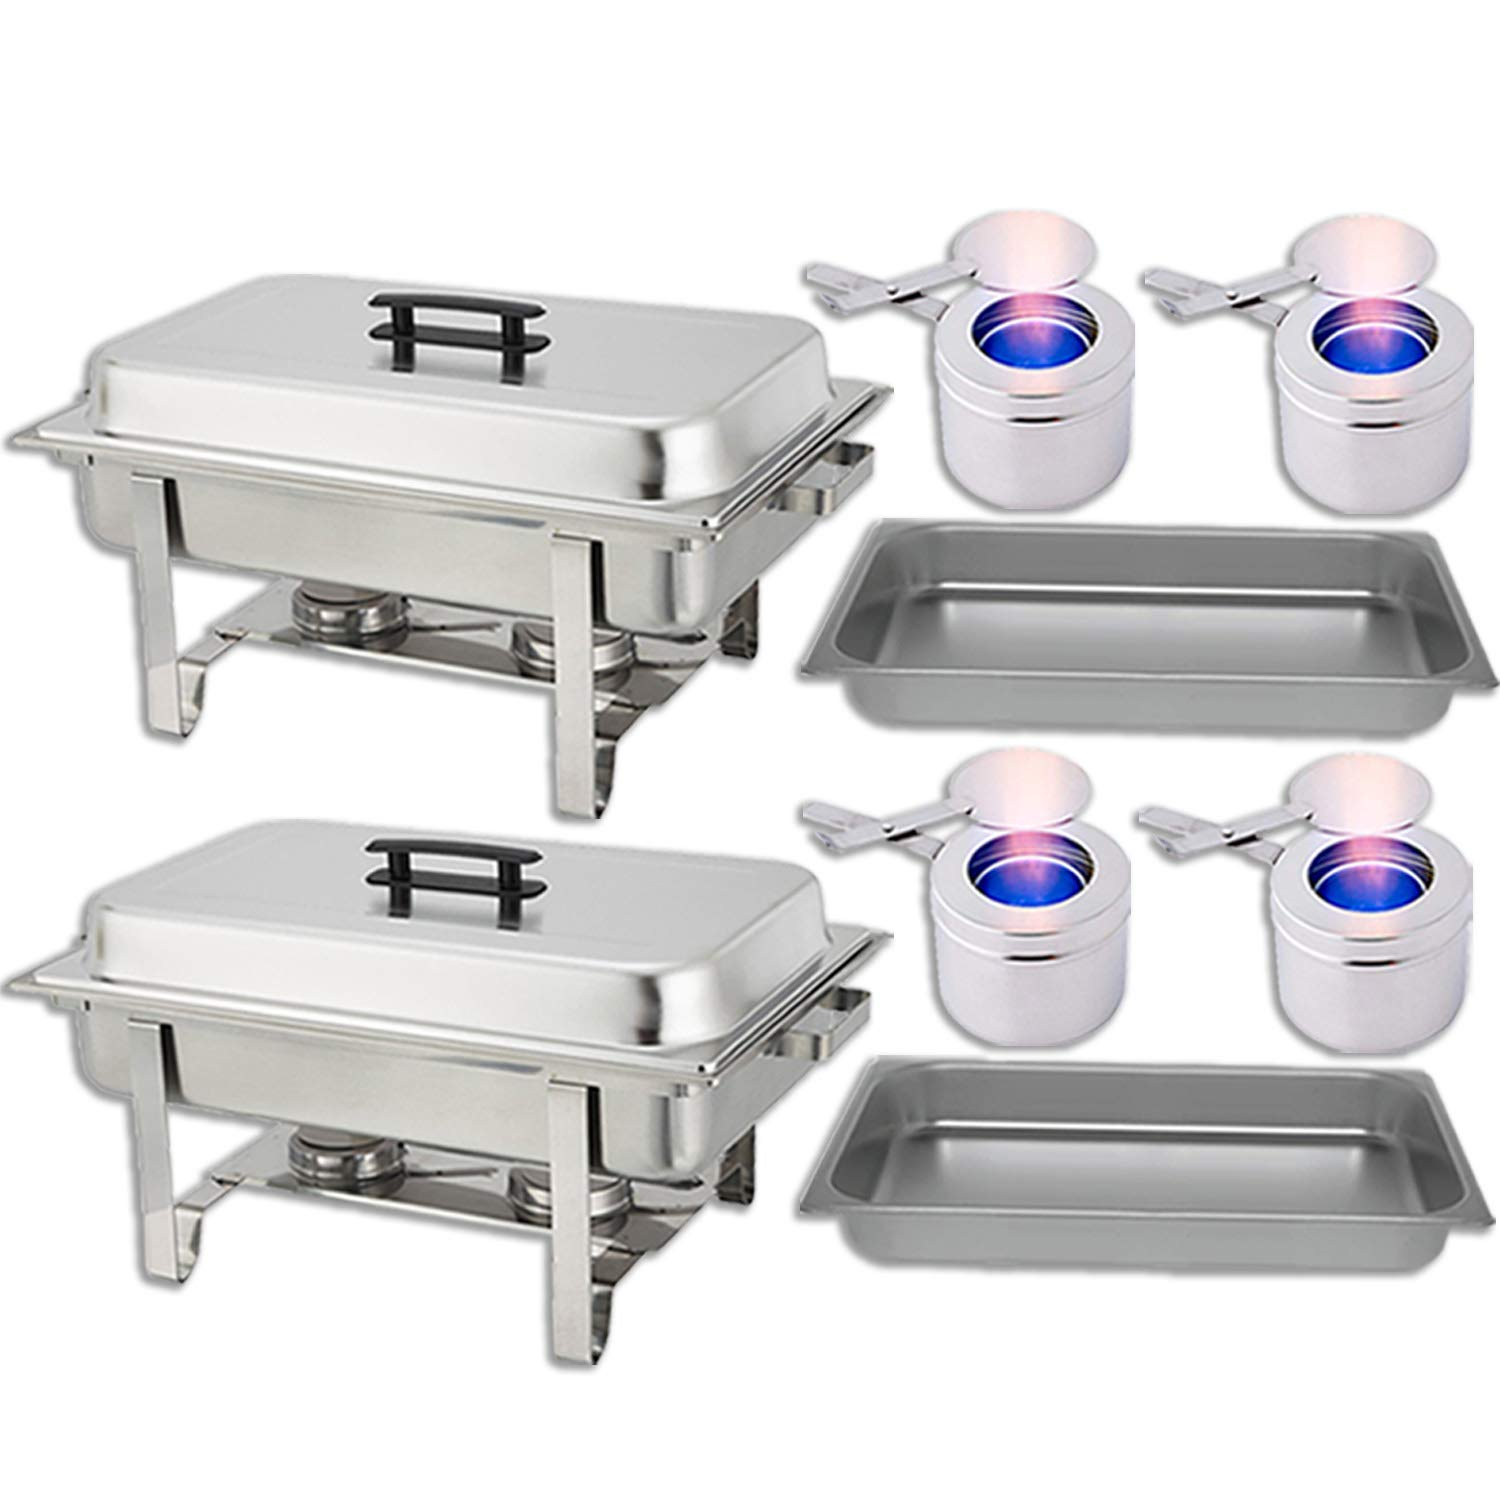 Chafing Dish Buffet Set - Water Pan + Food Pan (8 qt) + Frame + 2 Fuel Holders - Stainless-Steel Warmer Kit 2 Pack